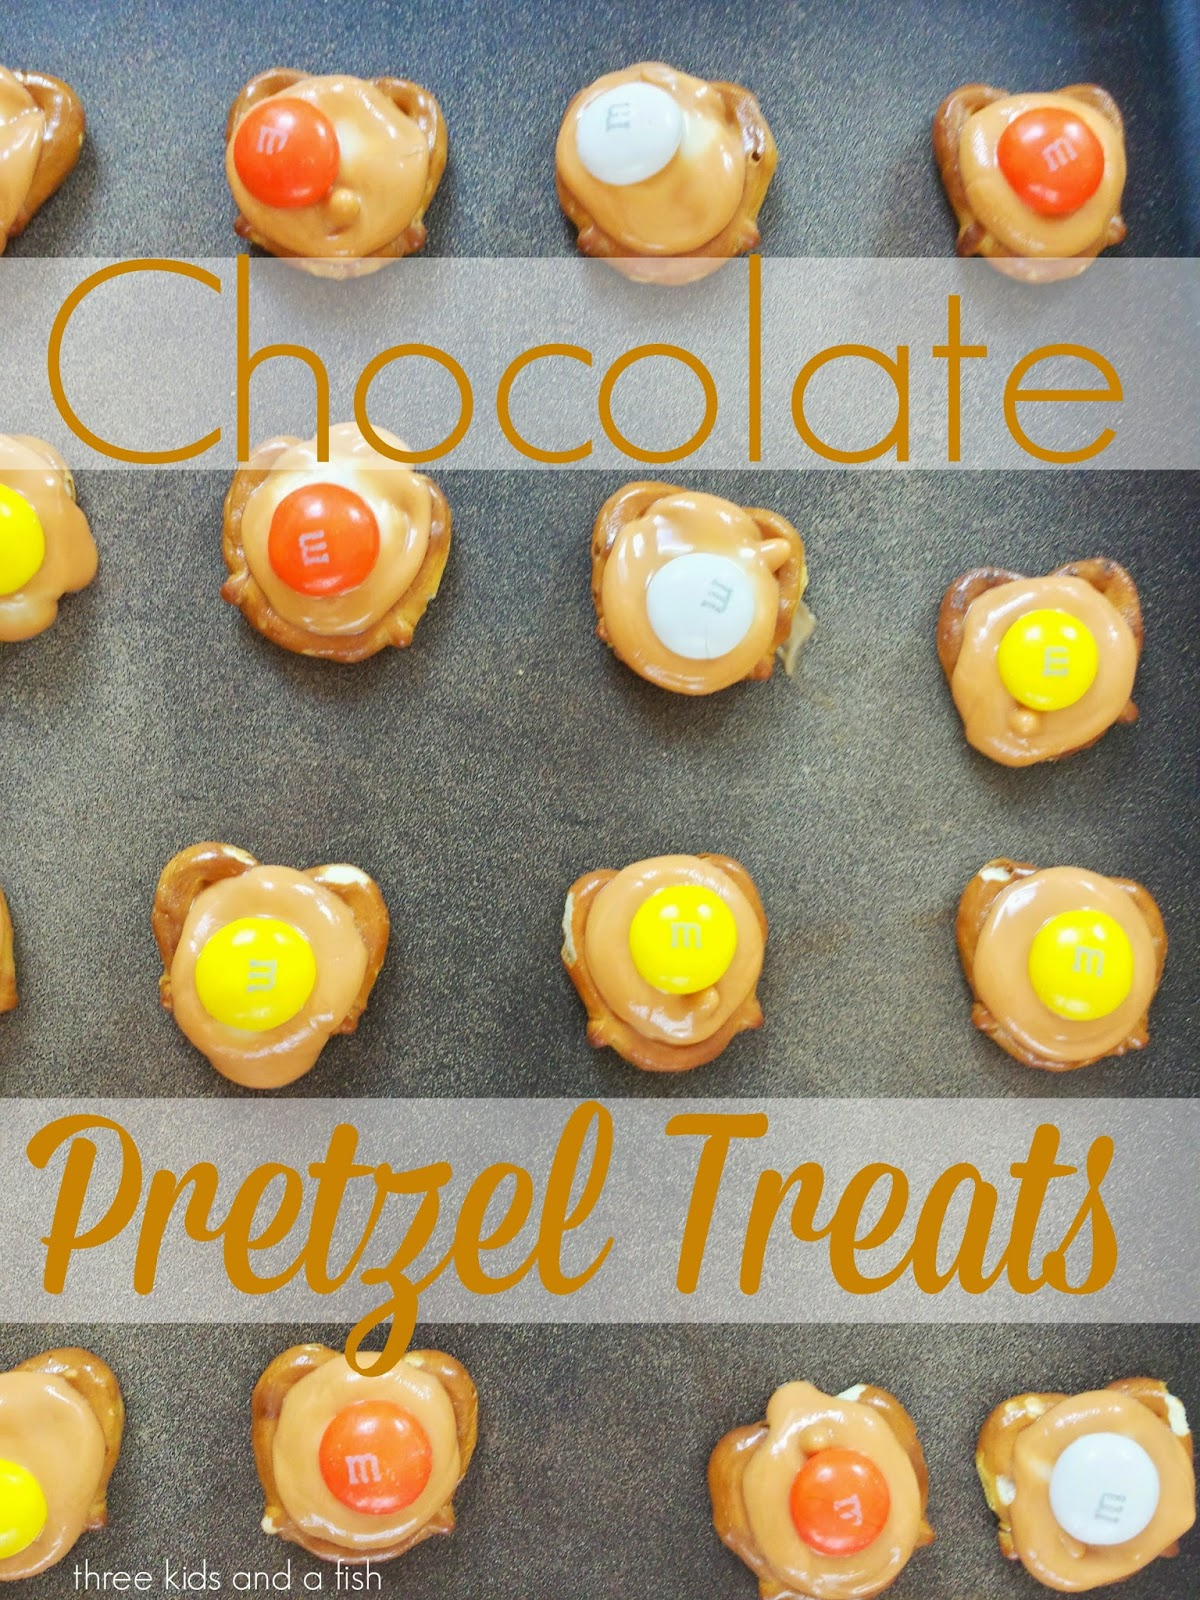 chocolate pretzels treats recipe